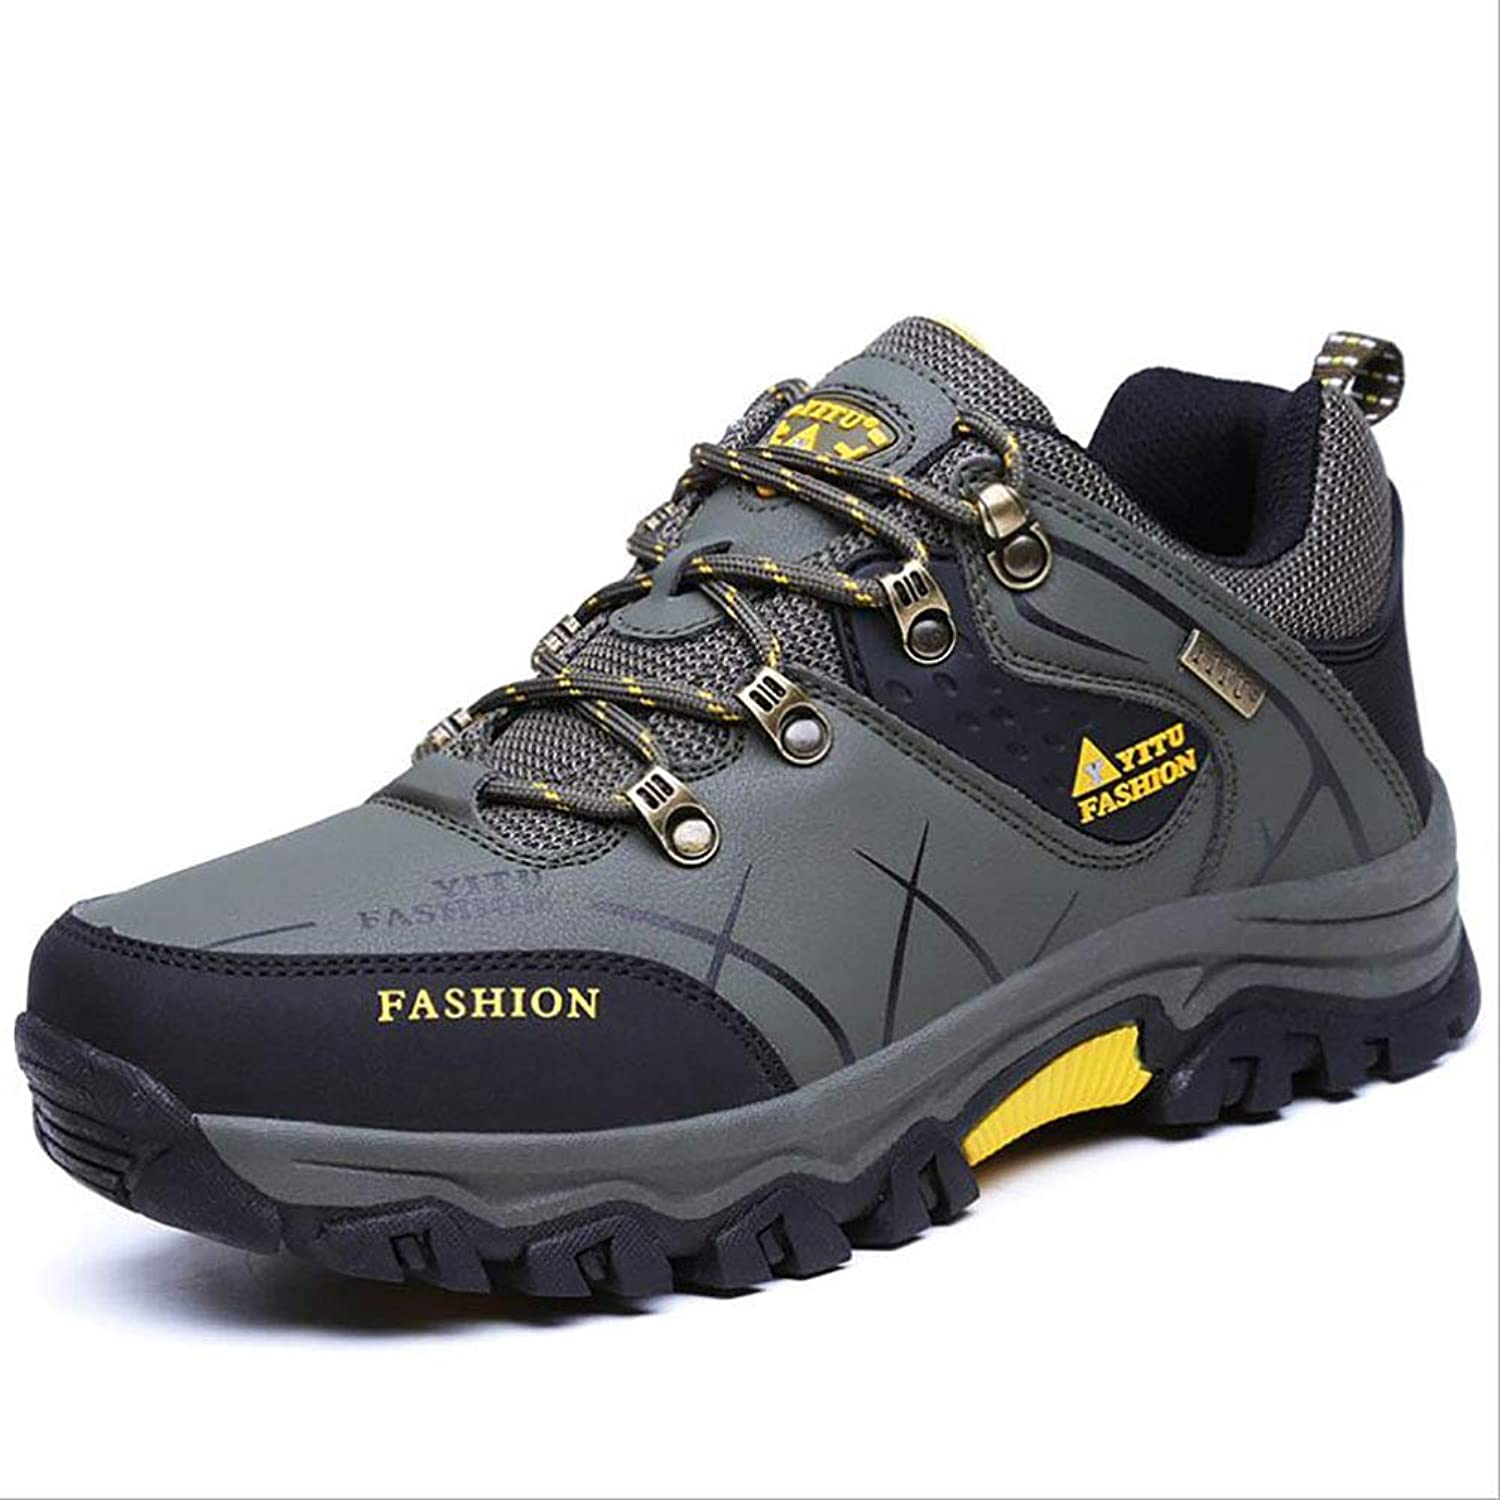 Men's shoes,Outdoor Exercise Sneakers, Artificial PU Running shoes, Spring Fall Waterproof Climbing shoes,Comfort Breathable Athletic shoes